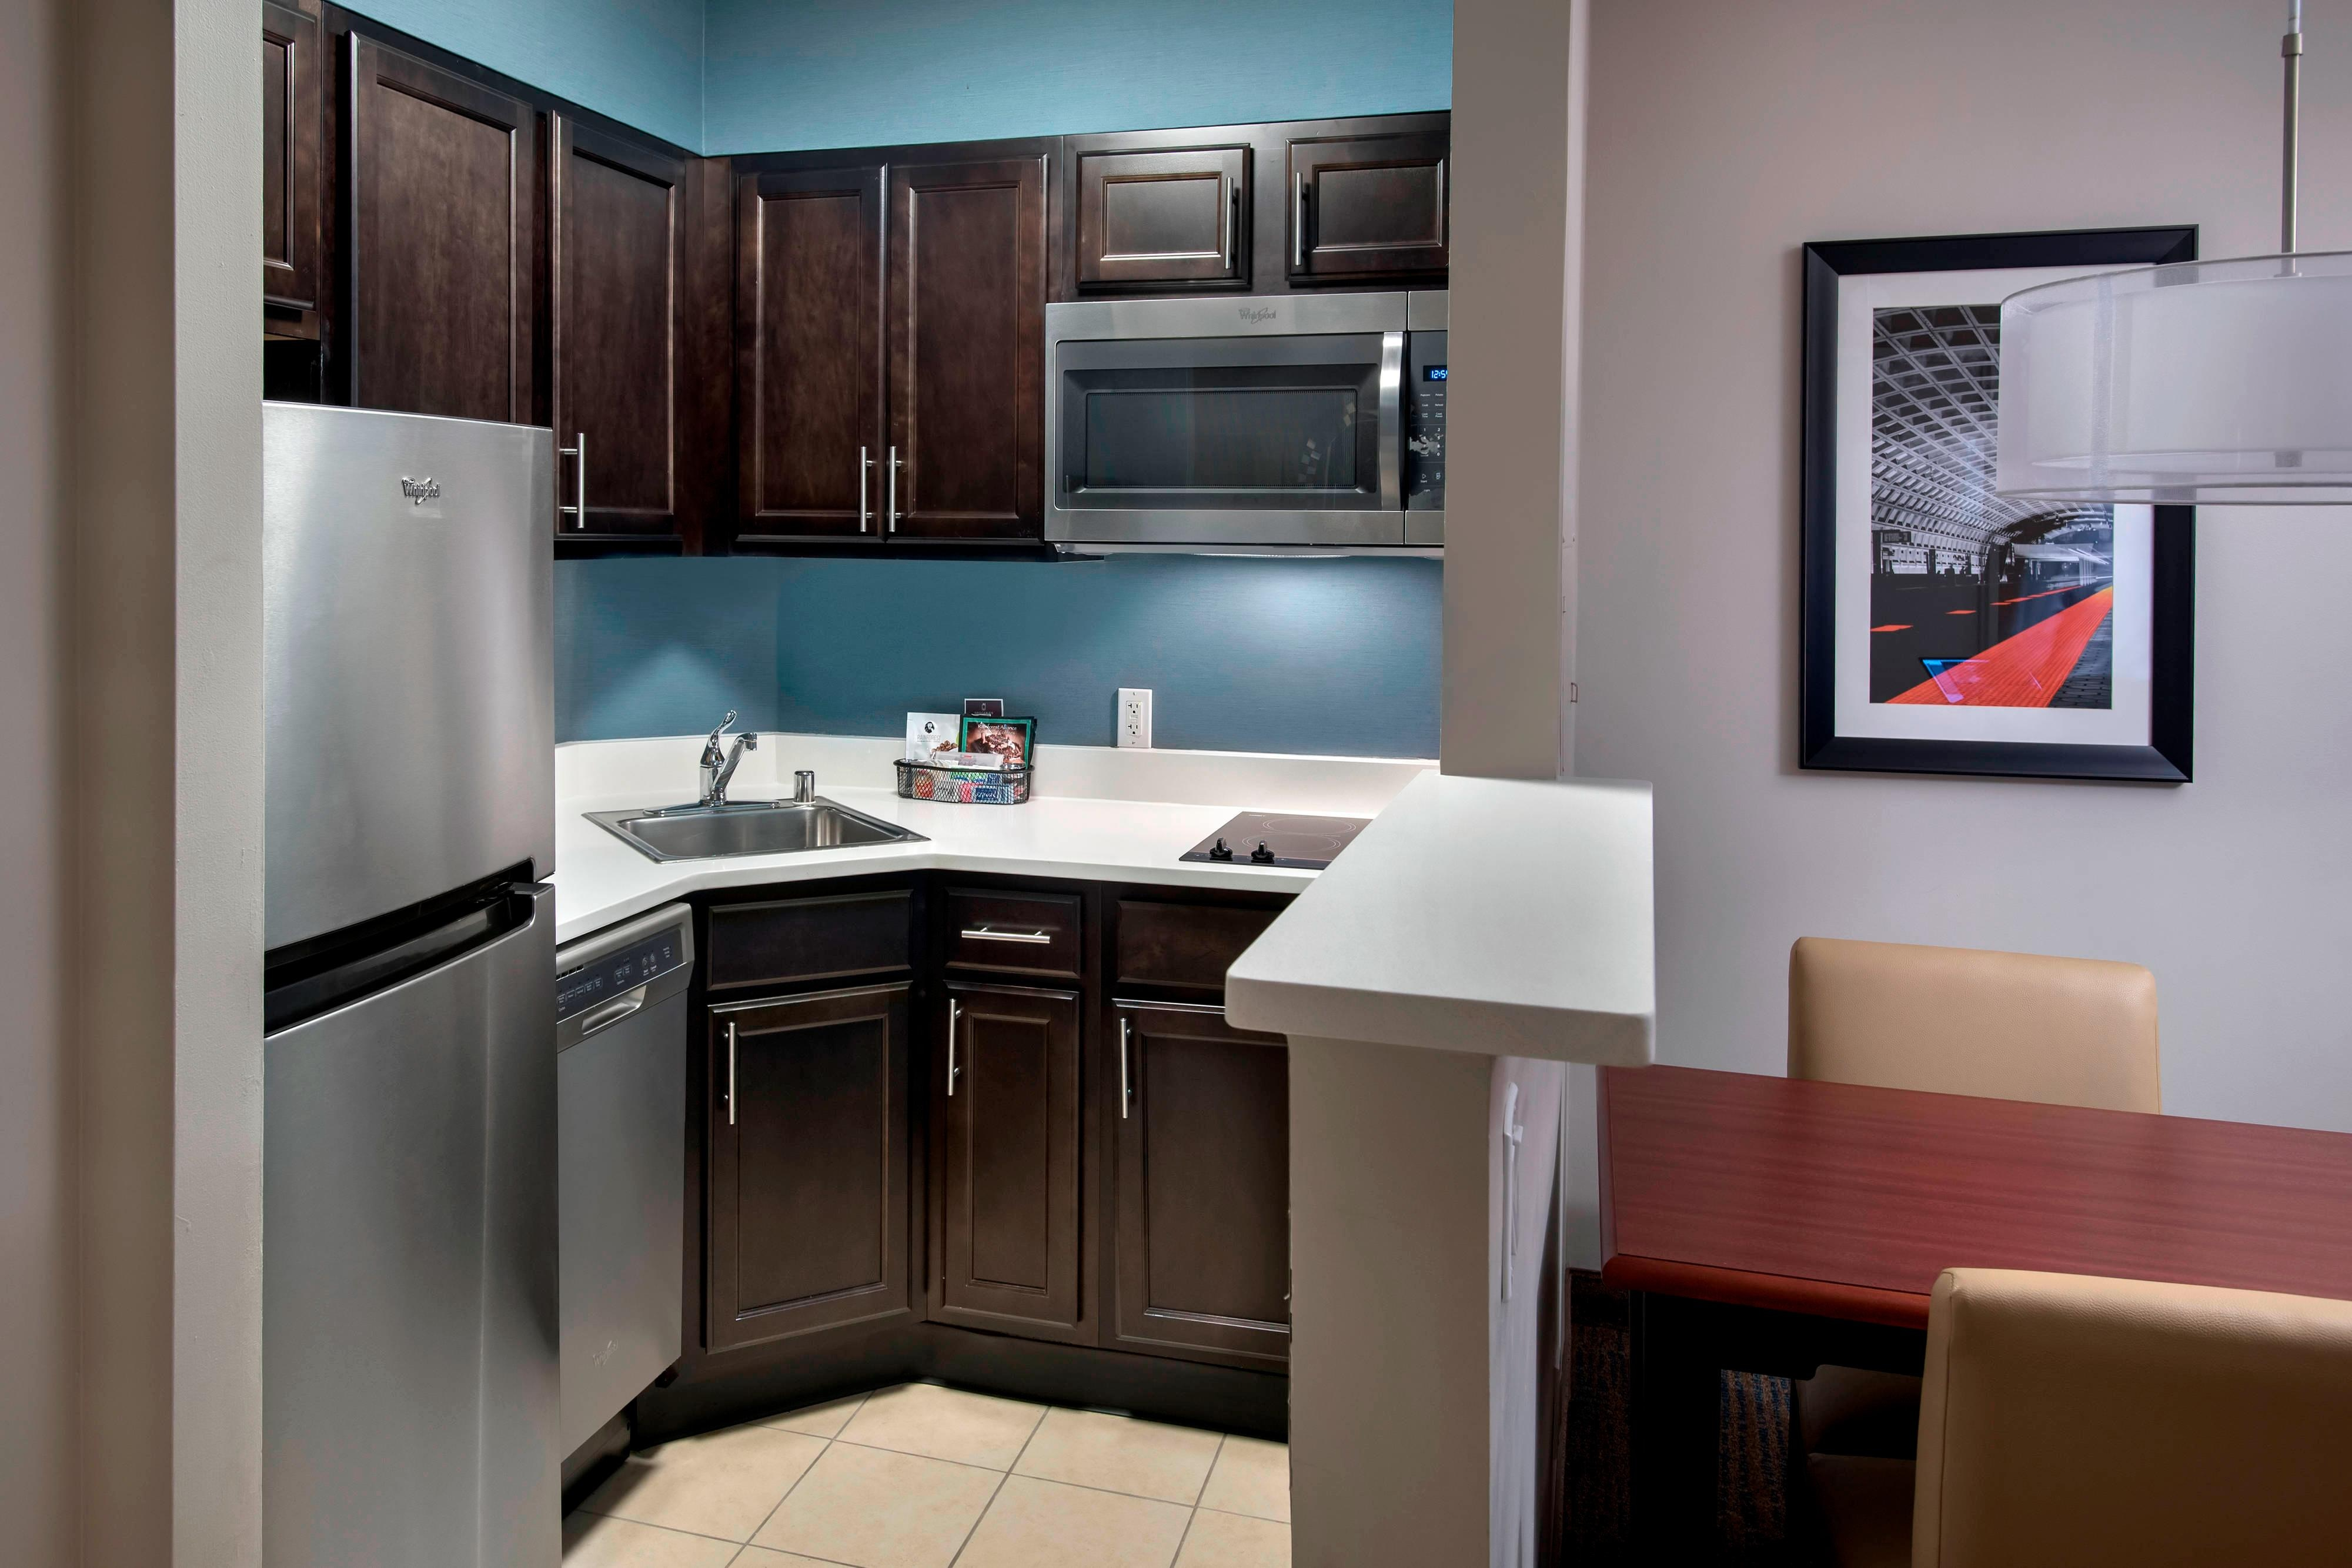 Downtown Hotels in Bethesda  Residence Inn Bethesda Downtown